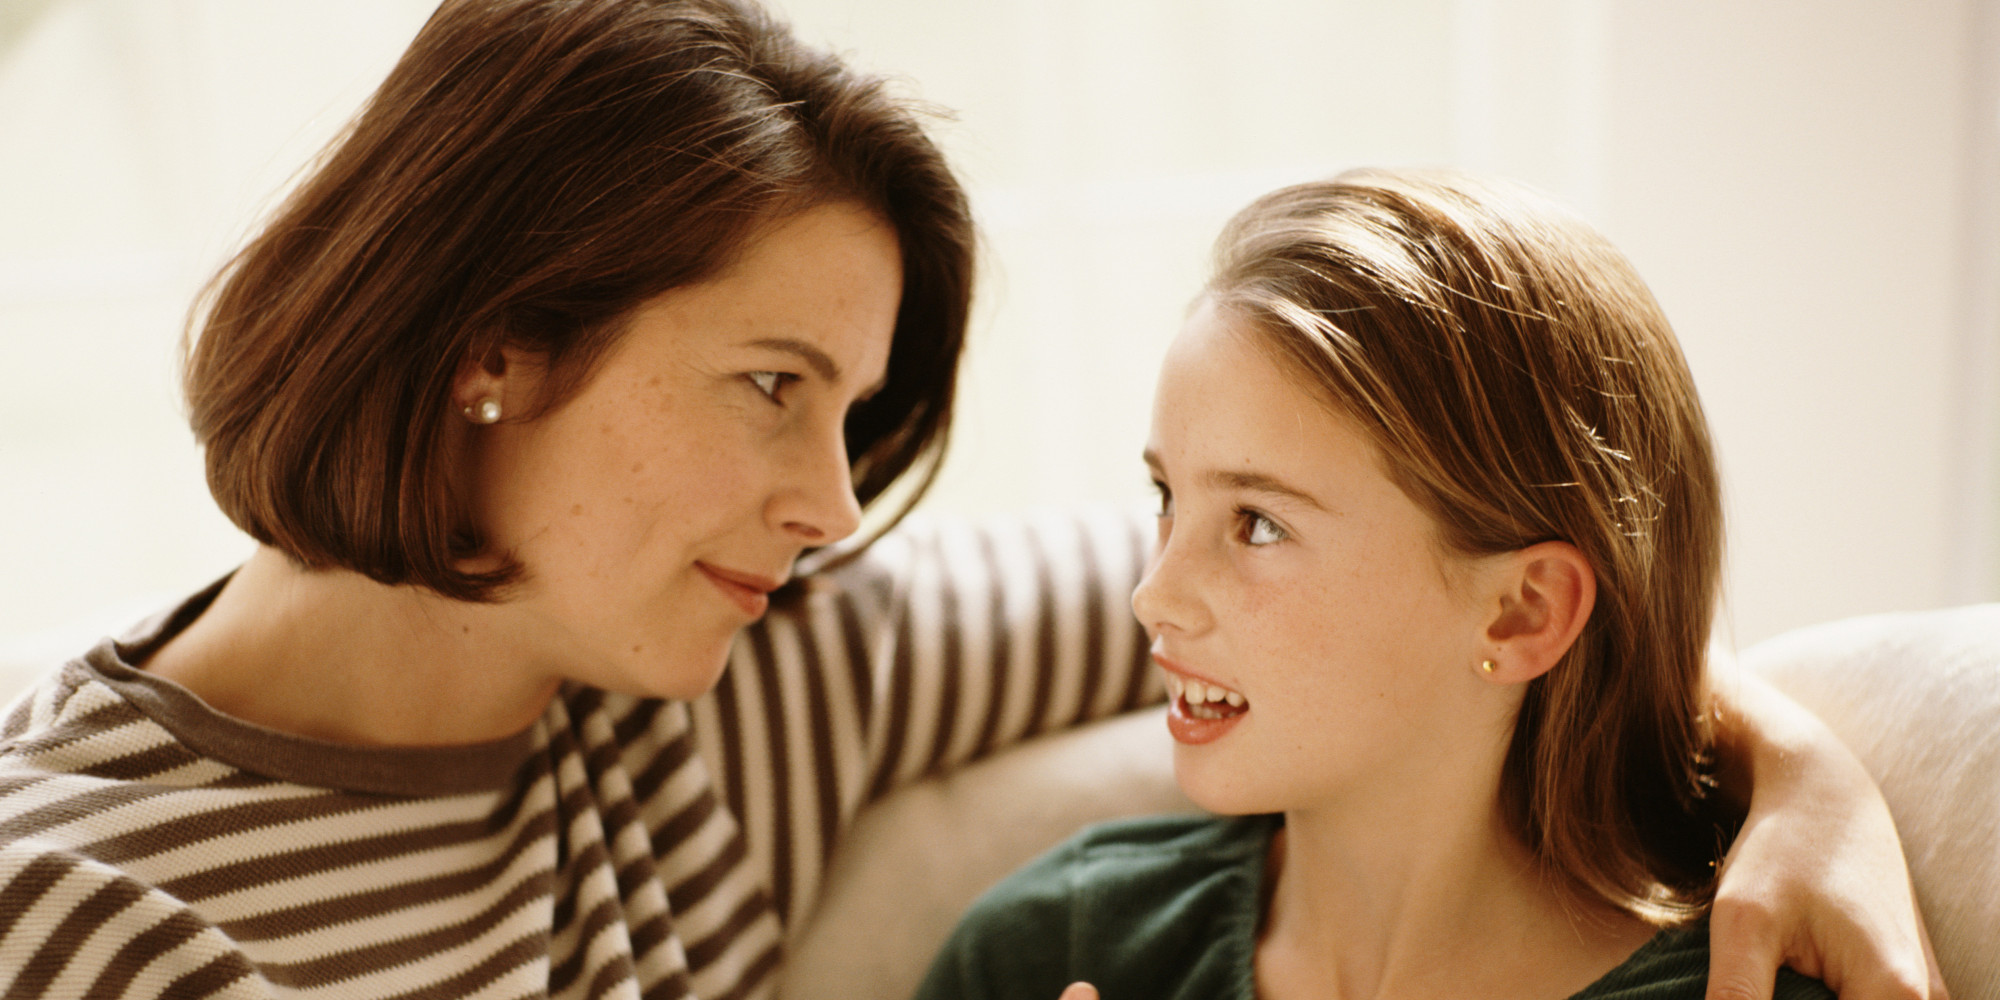 Your Child's Self-Esteem: Parents Don't Make These Mistakes